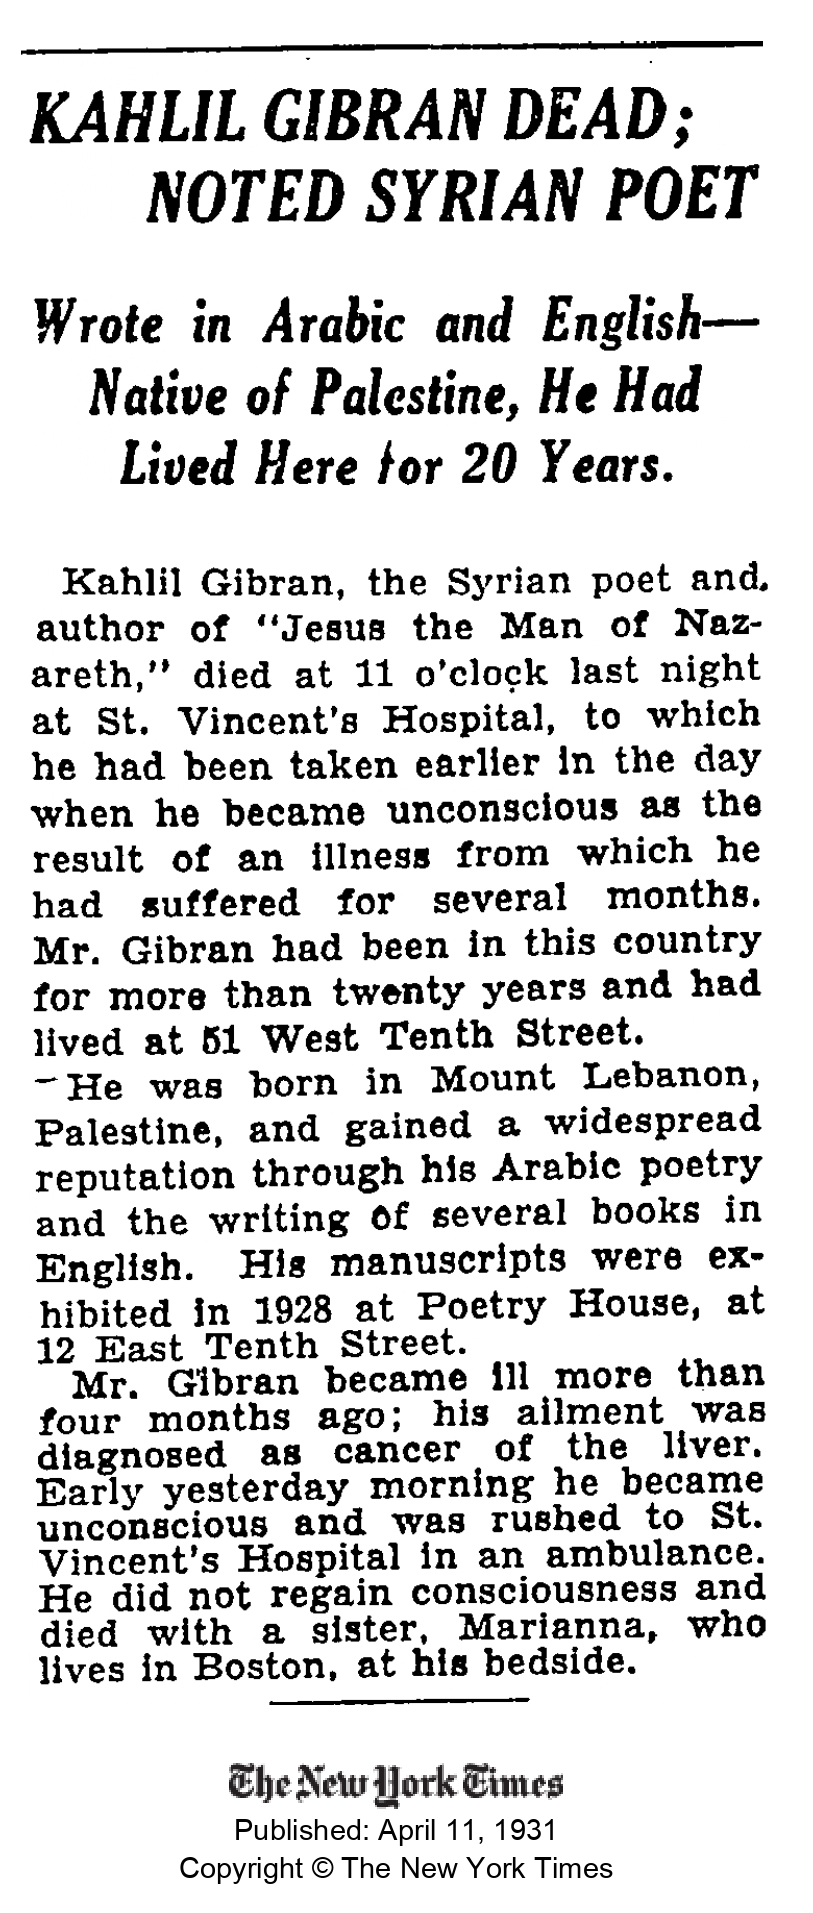 Kahlil Gibran Dead; Noted Syrian Poet, The New York Times, Apr 1, 1931